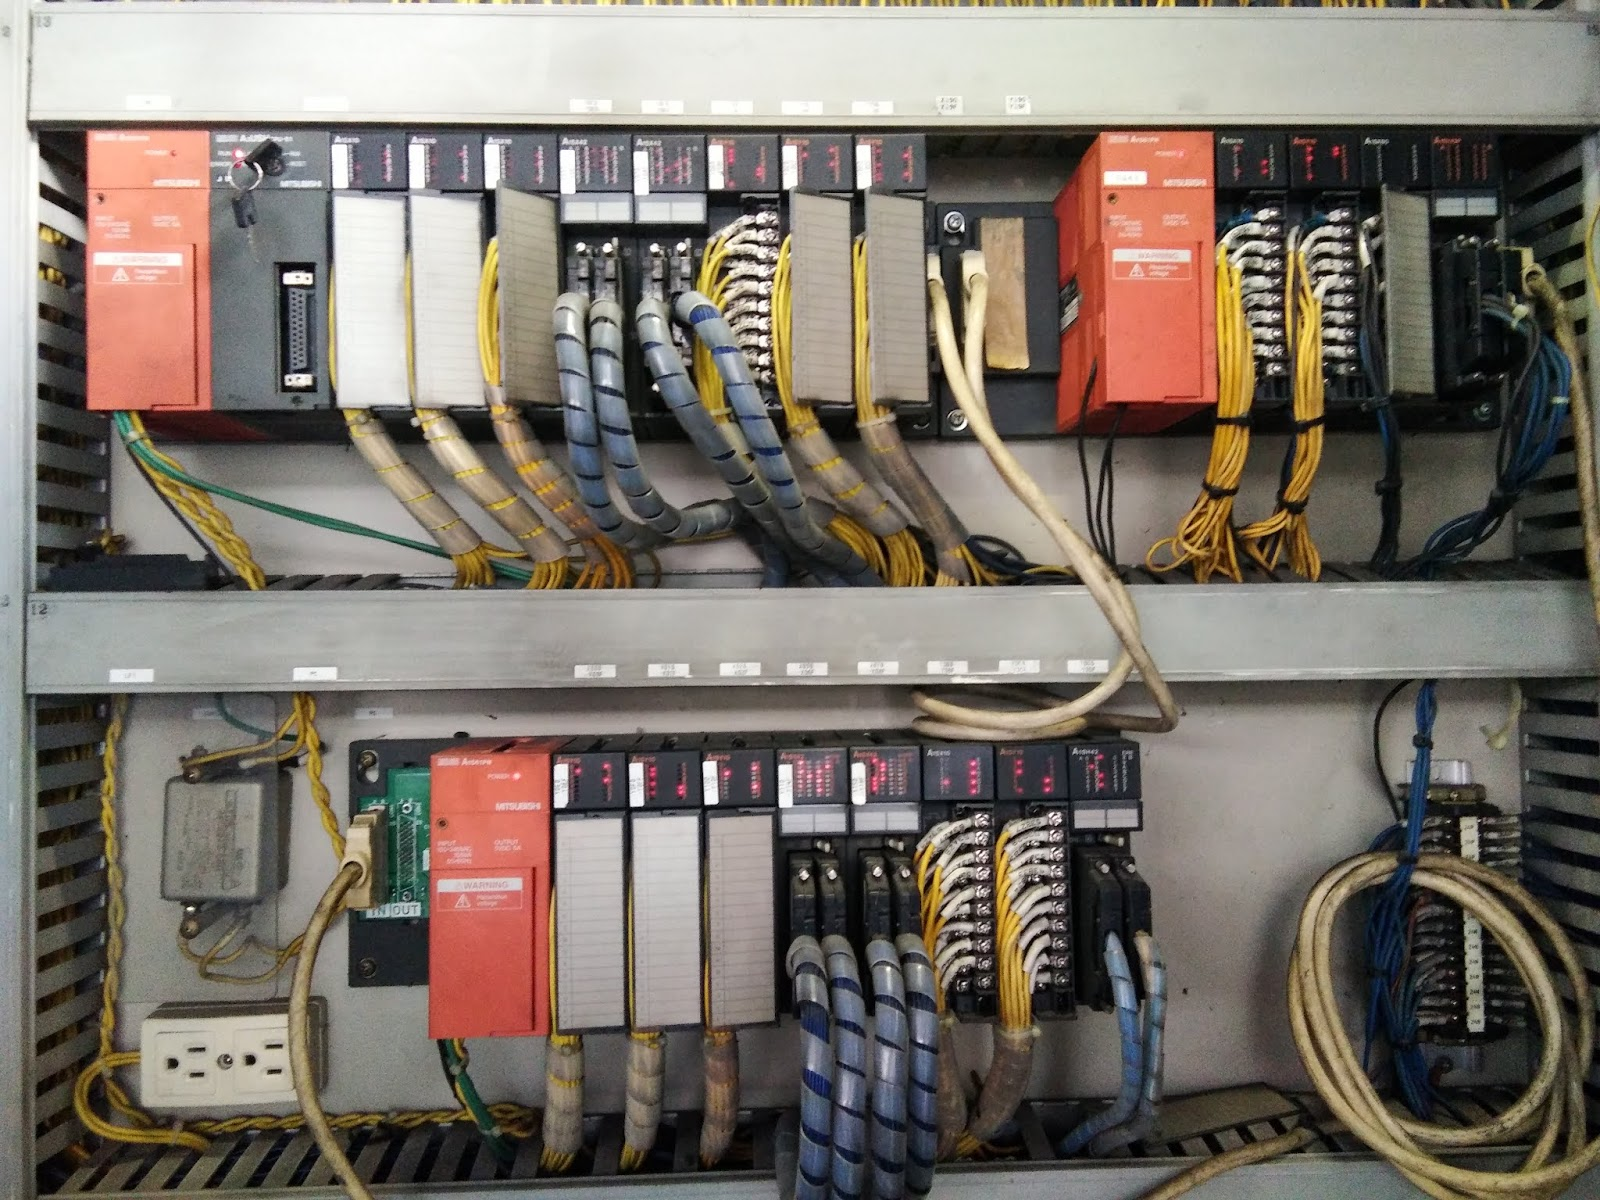 Pengenalan Panel Control PLC - Teknisi Listrik on roof panel, pump panel, switch panel, fuse panel, drywall panel, glass panel, maintenance panel,